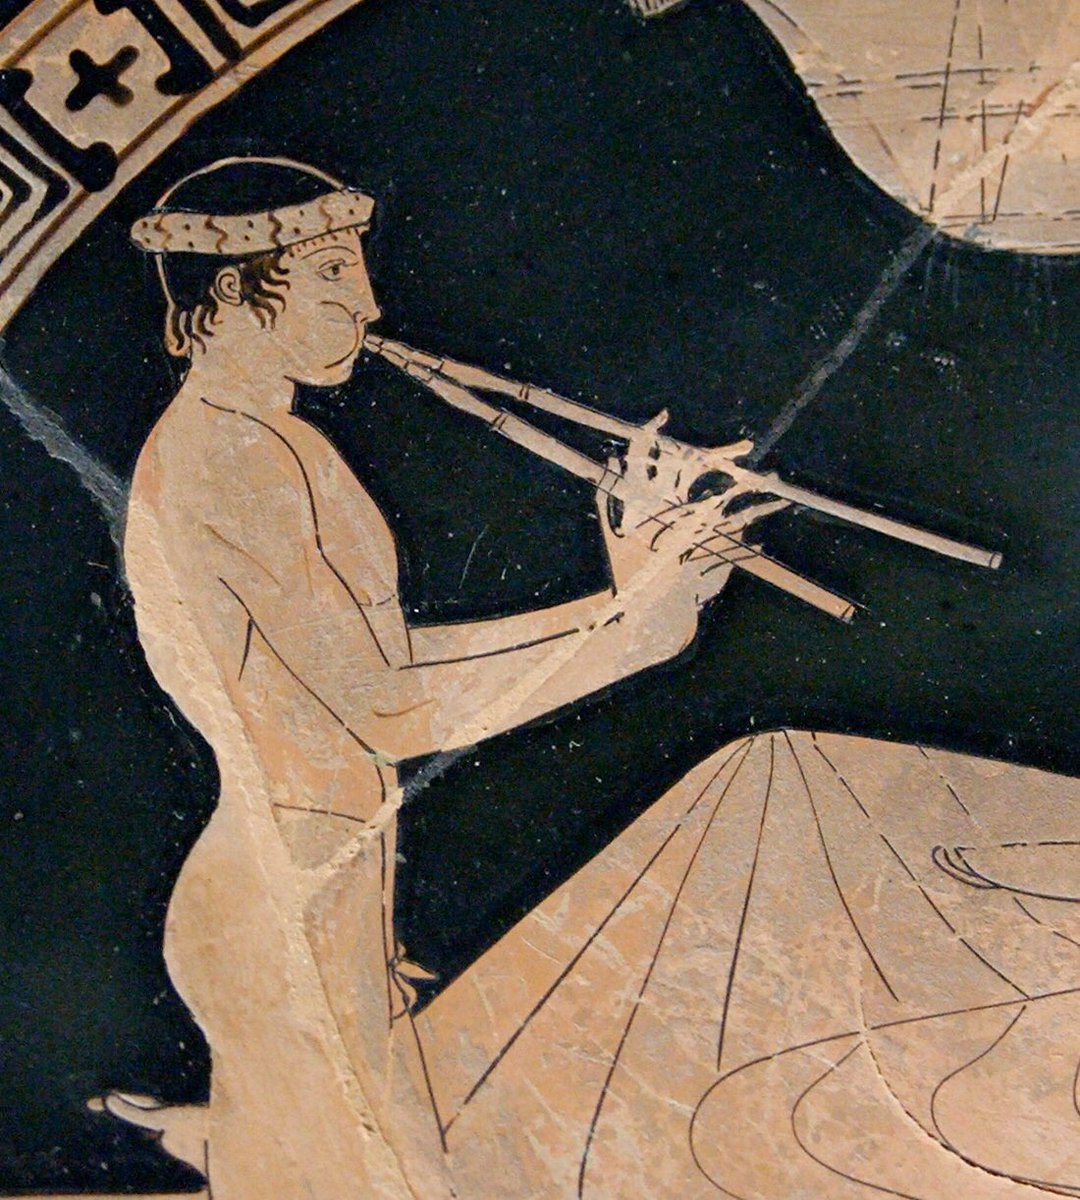 Want to hear what Ancient Greek music sounded like? Eager to revisit the roots of European musical tradition? Join us, Friday 3pm in JH7 for a special lecture and AV demonstration by @ArmandDAngour, with a reception to follow after! @MusicMaynooth @MaynoothUni #classics #aulos